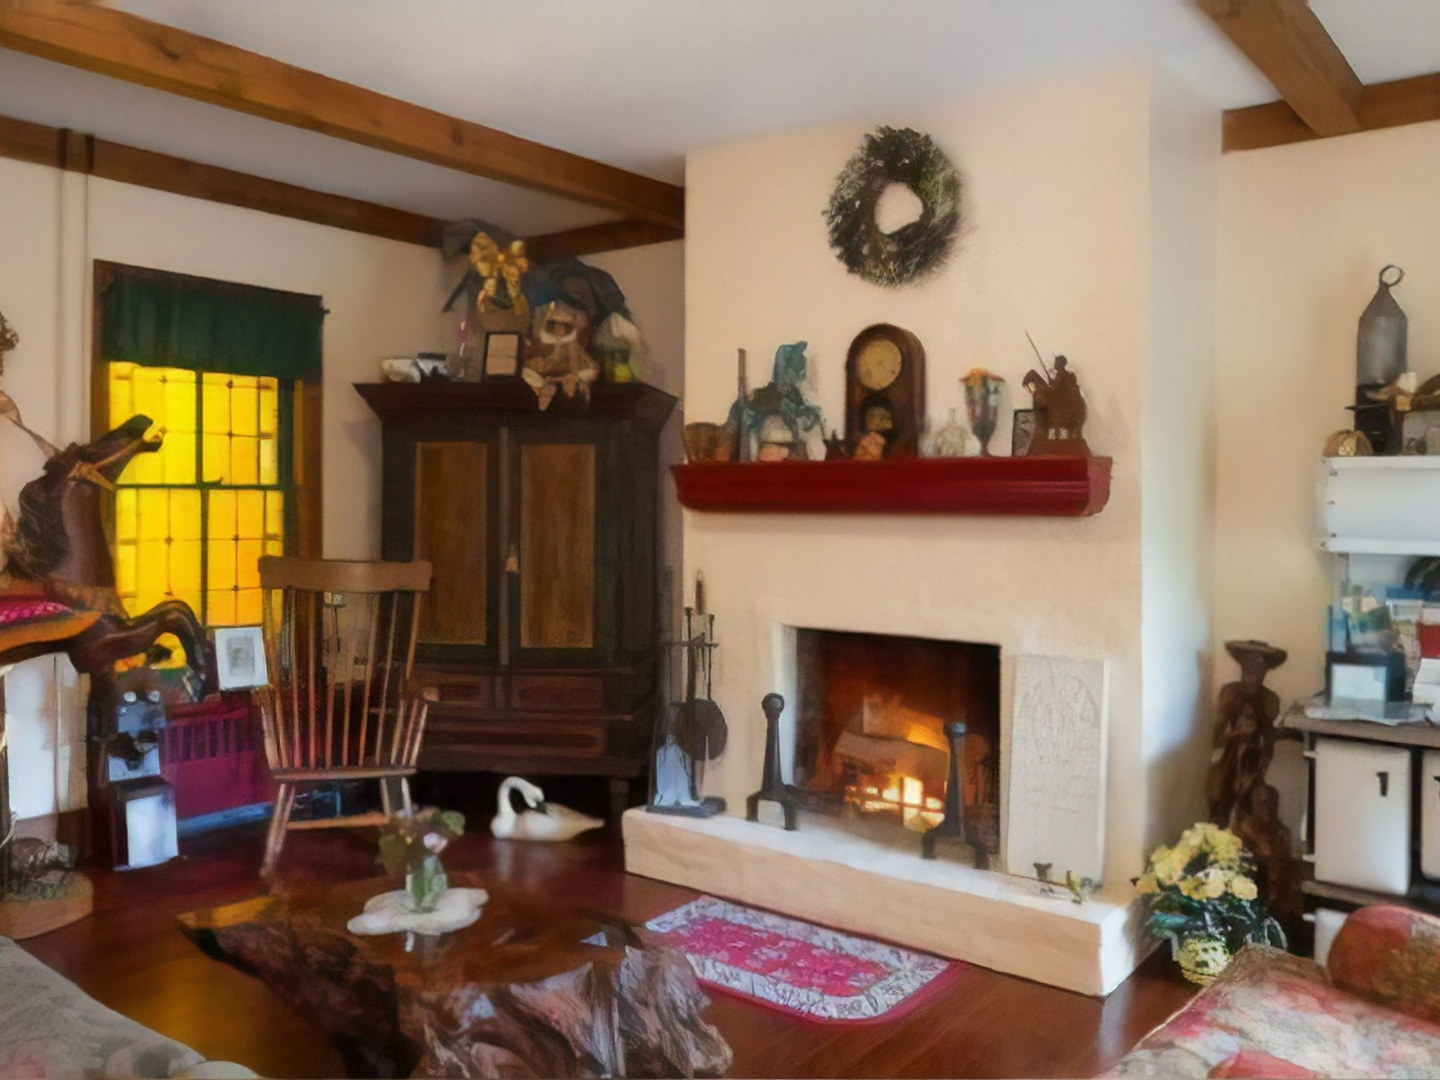 A living room filled with furniture and a fire place at The Widow McCrea House Victorian B&B.